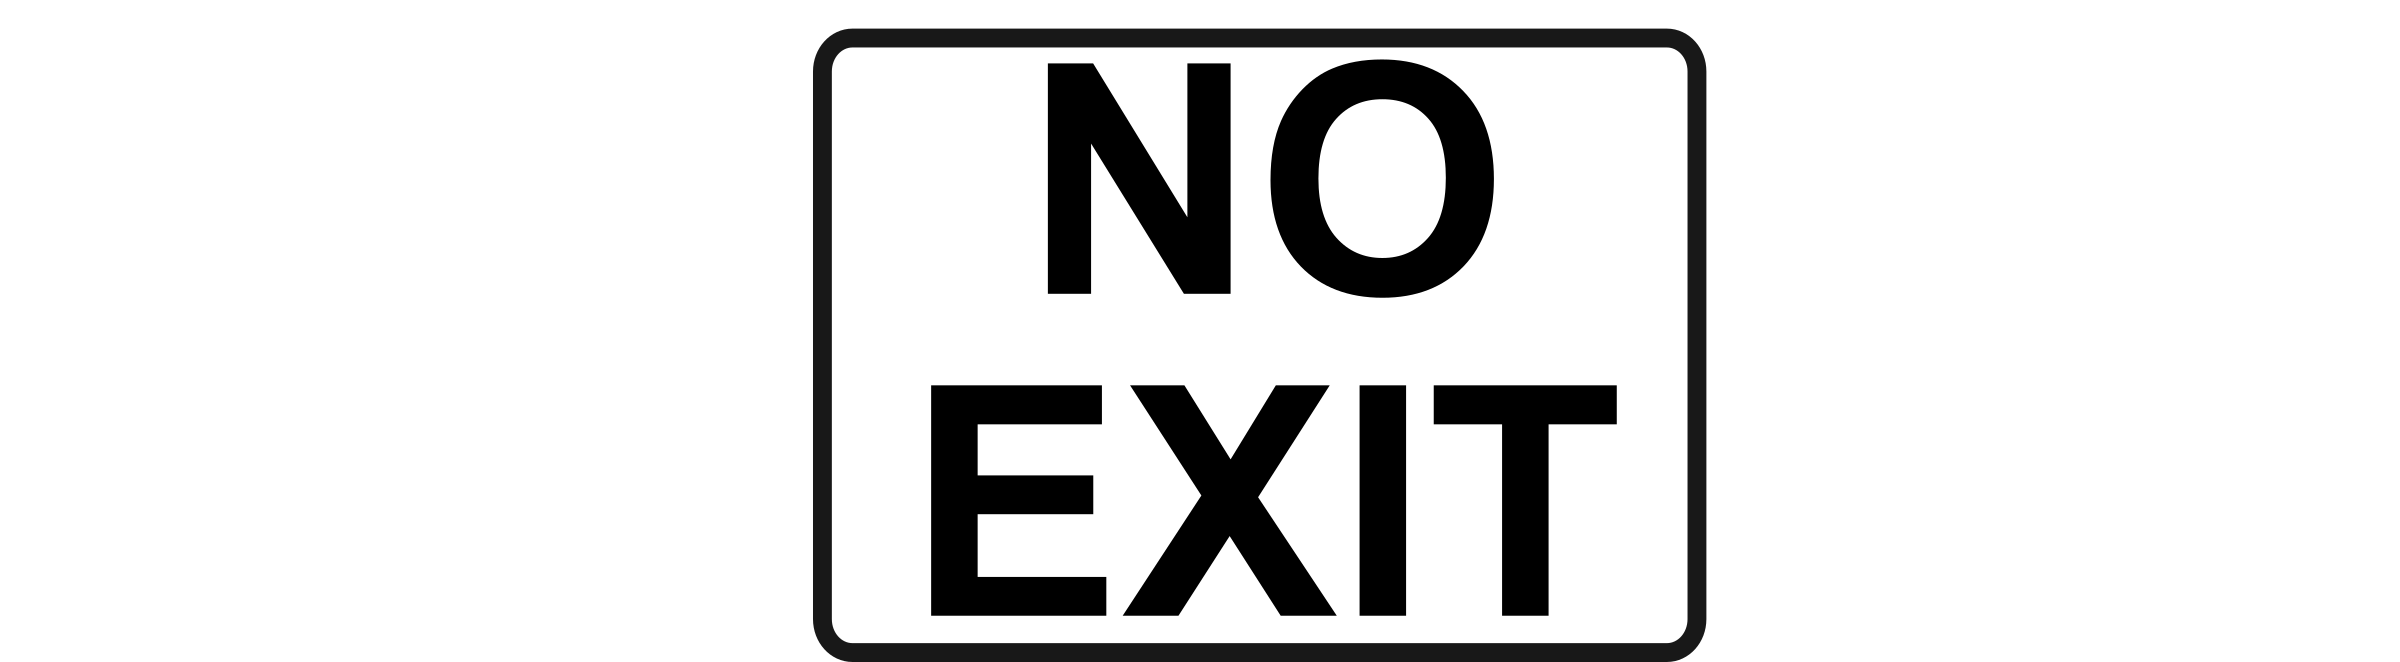 No Exit   Black On White By Rfc1394